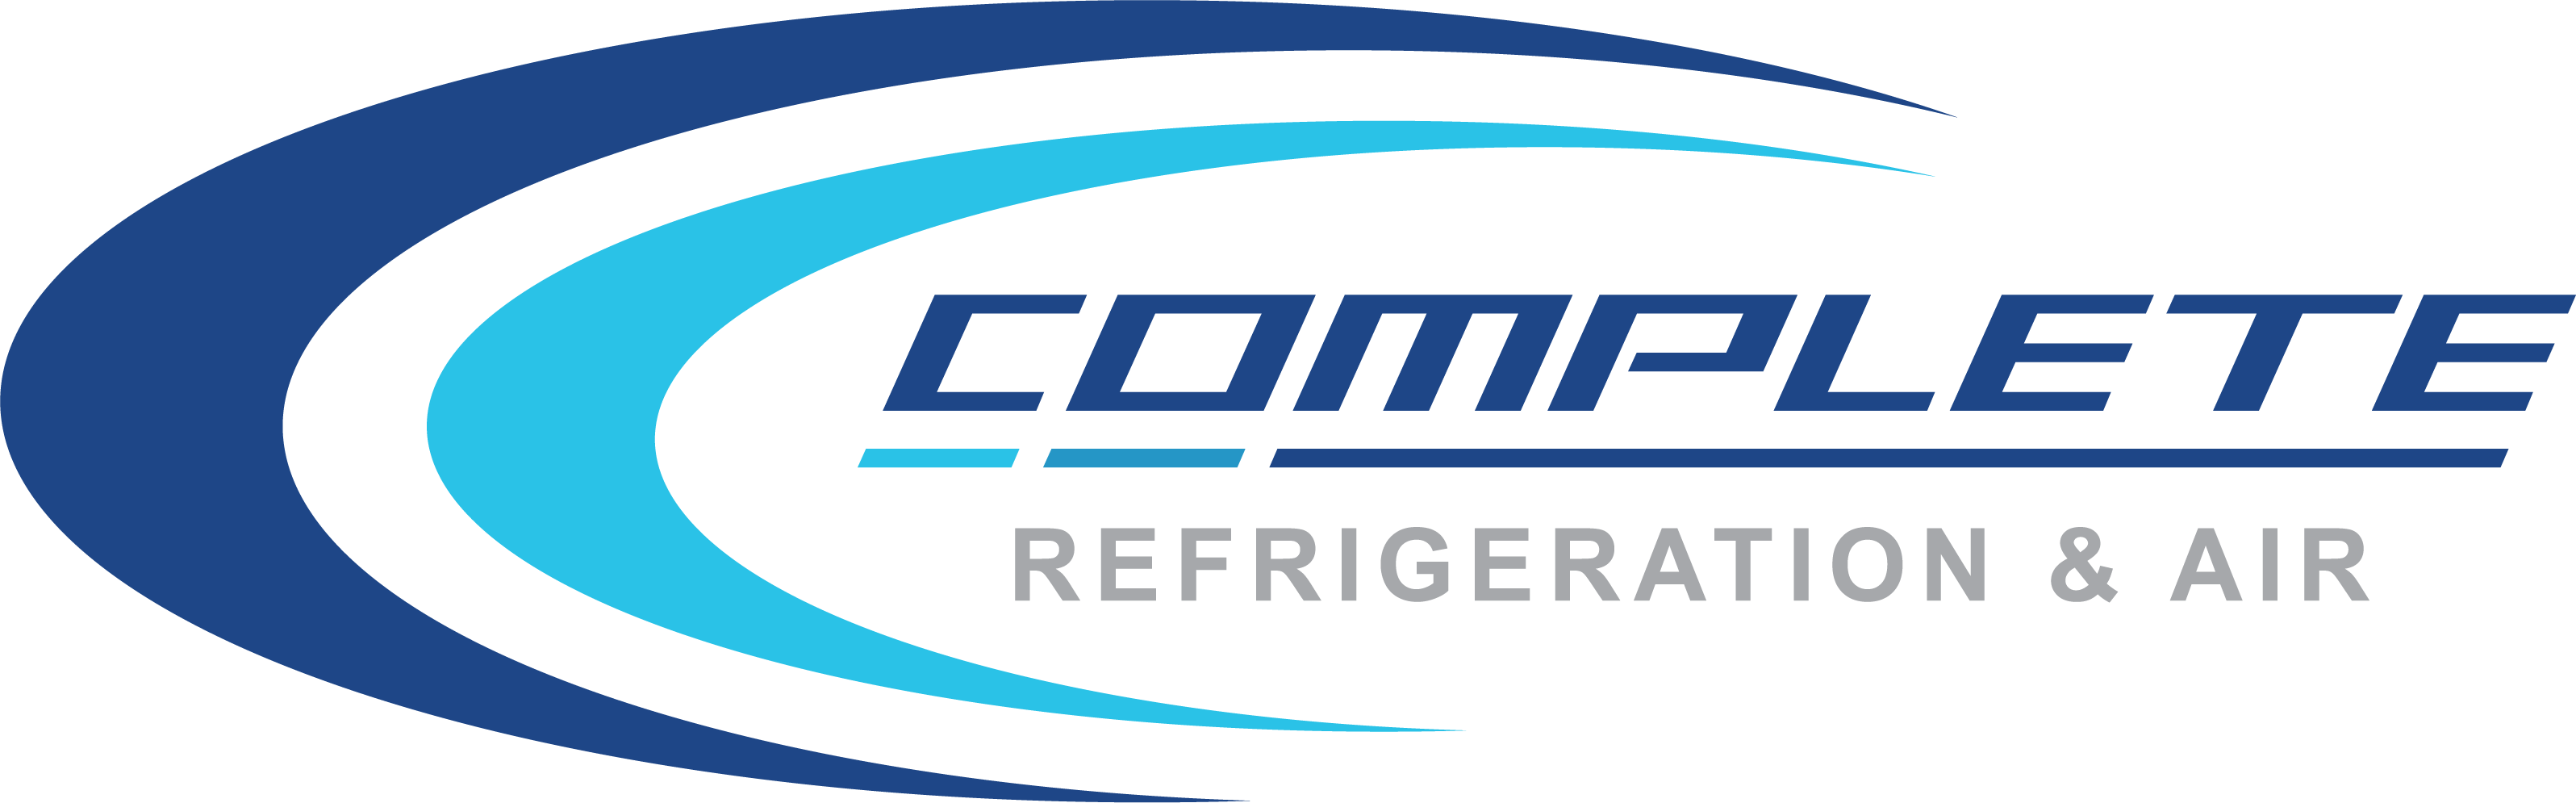 Complete Refrigeration & Air